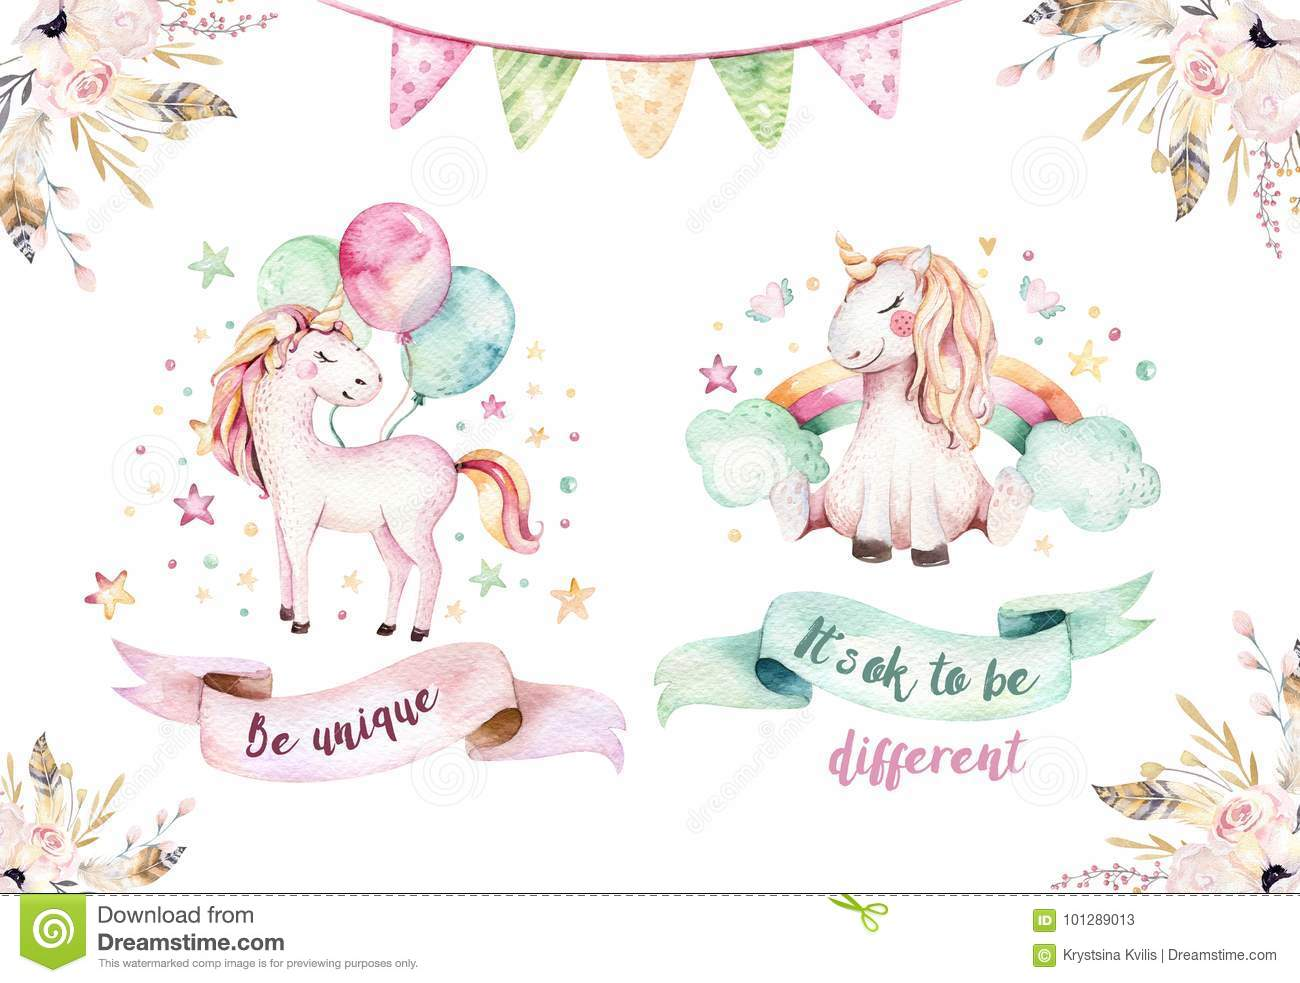 Isolated cute watercolor unicorn clipart. Nursery unicorns illustration. Princess rainbow unicorns poster. Trendy pink